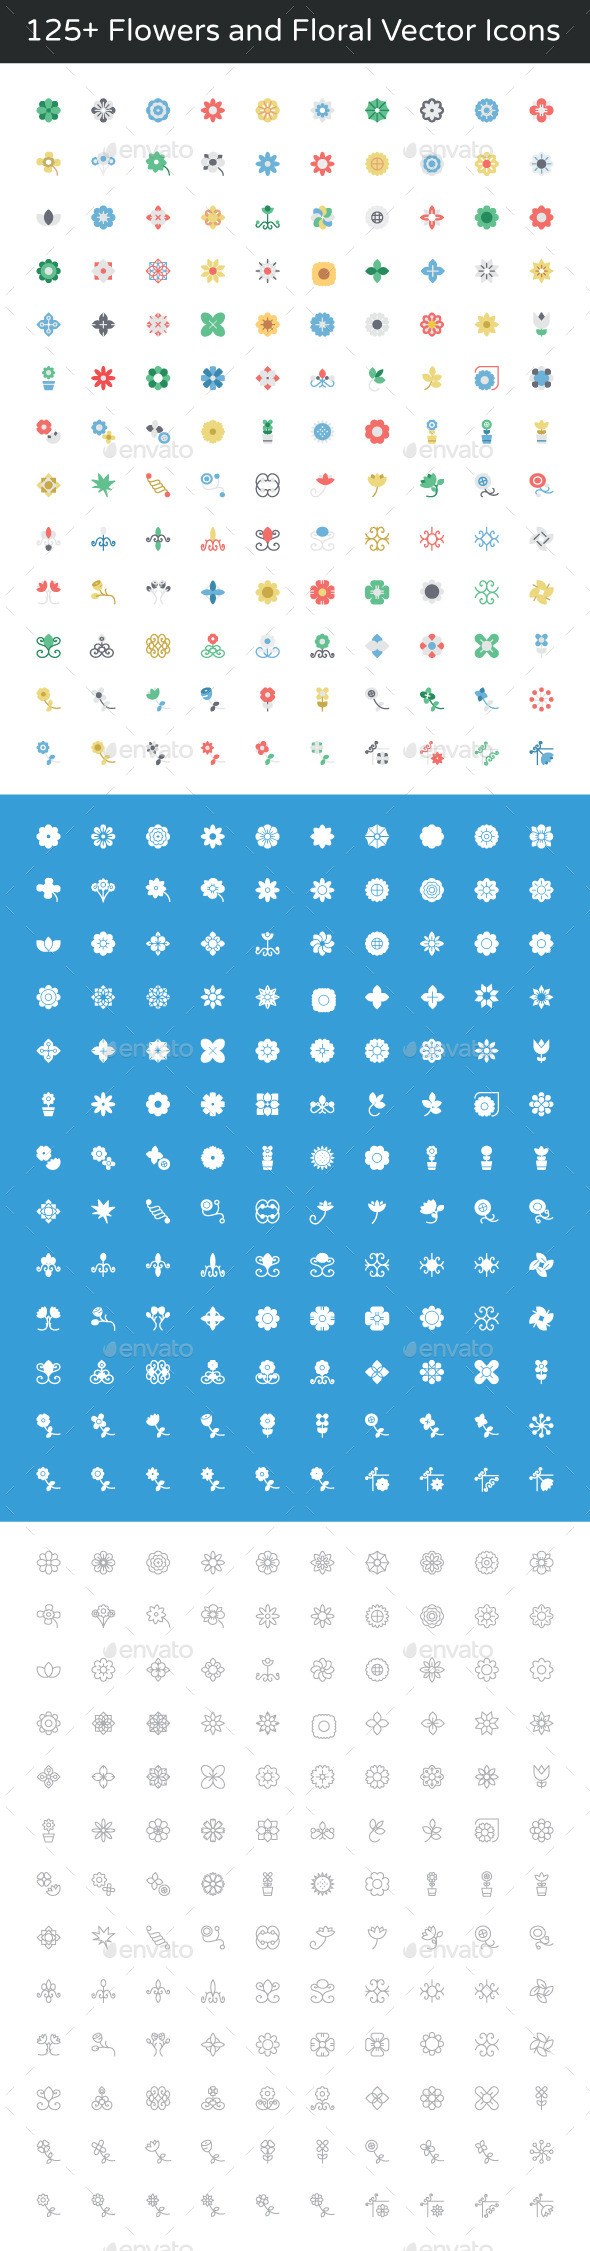 125+ Flowers and Floral Vector Icons - Icons